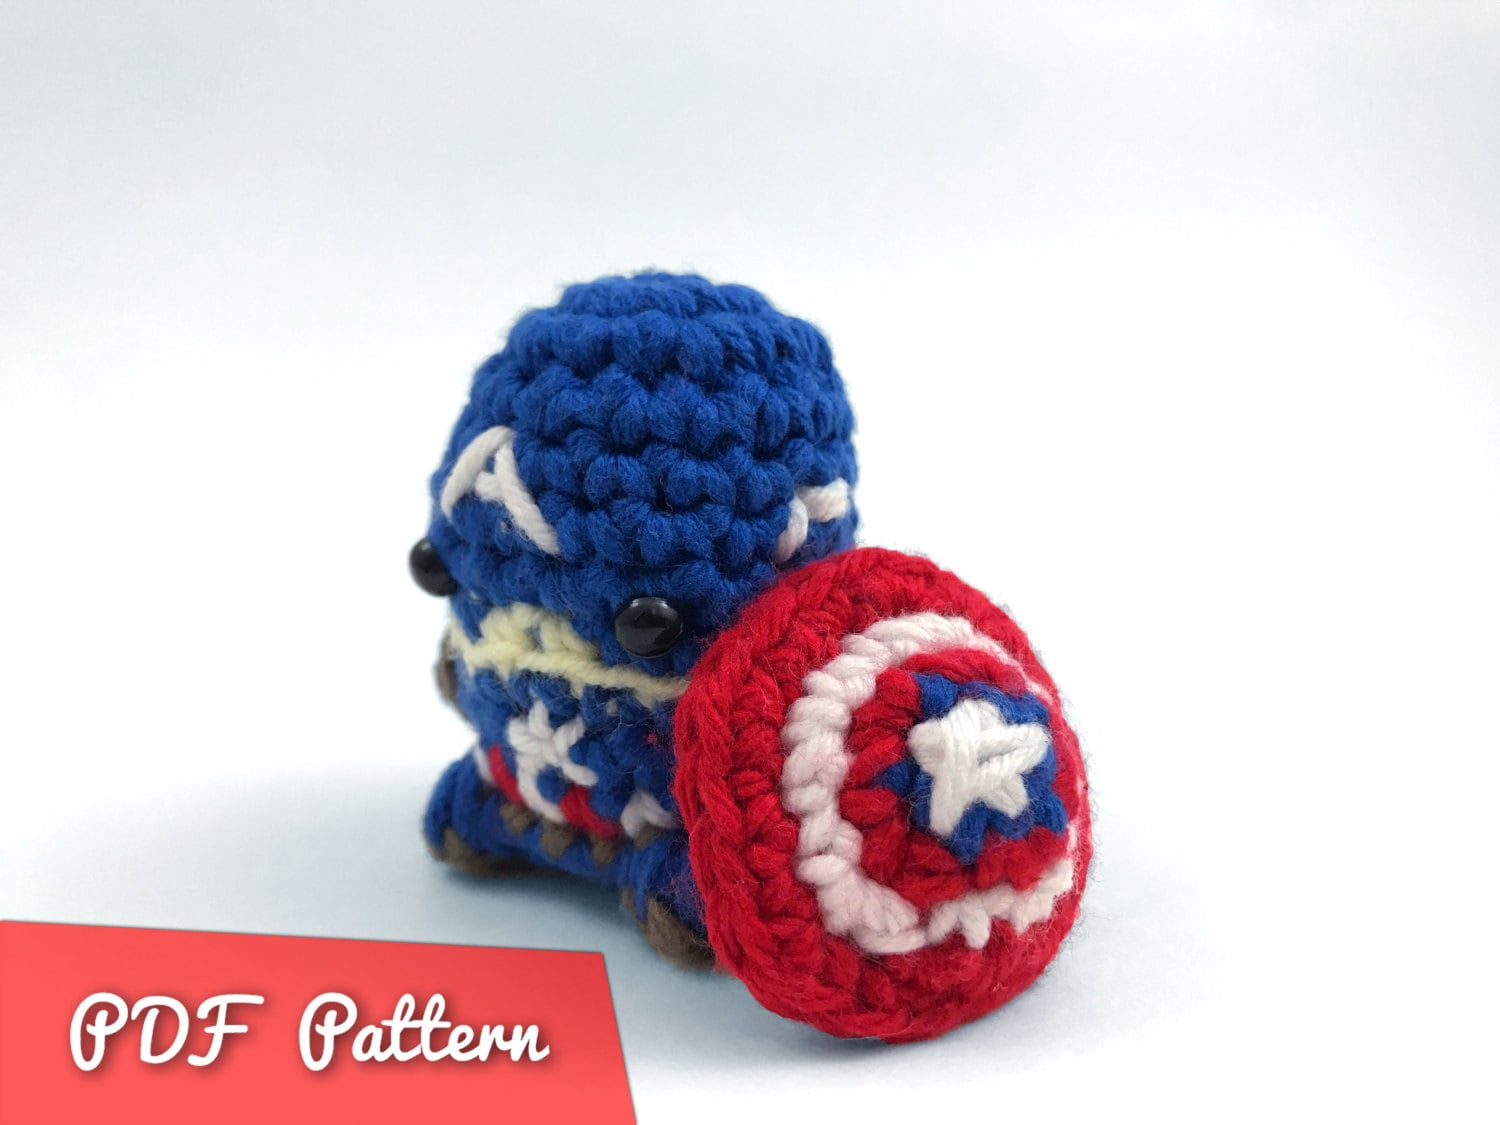 Pdf Pattern For Crocheted Captain America From The Avengers Etsy